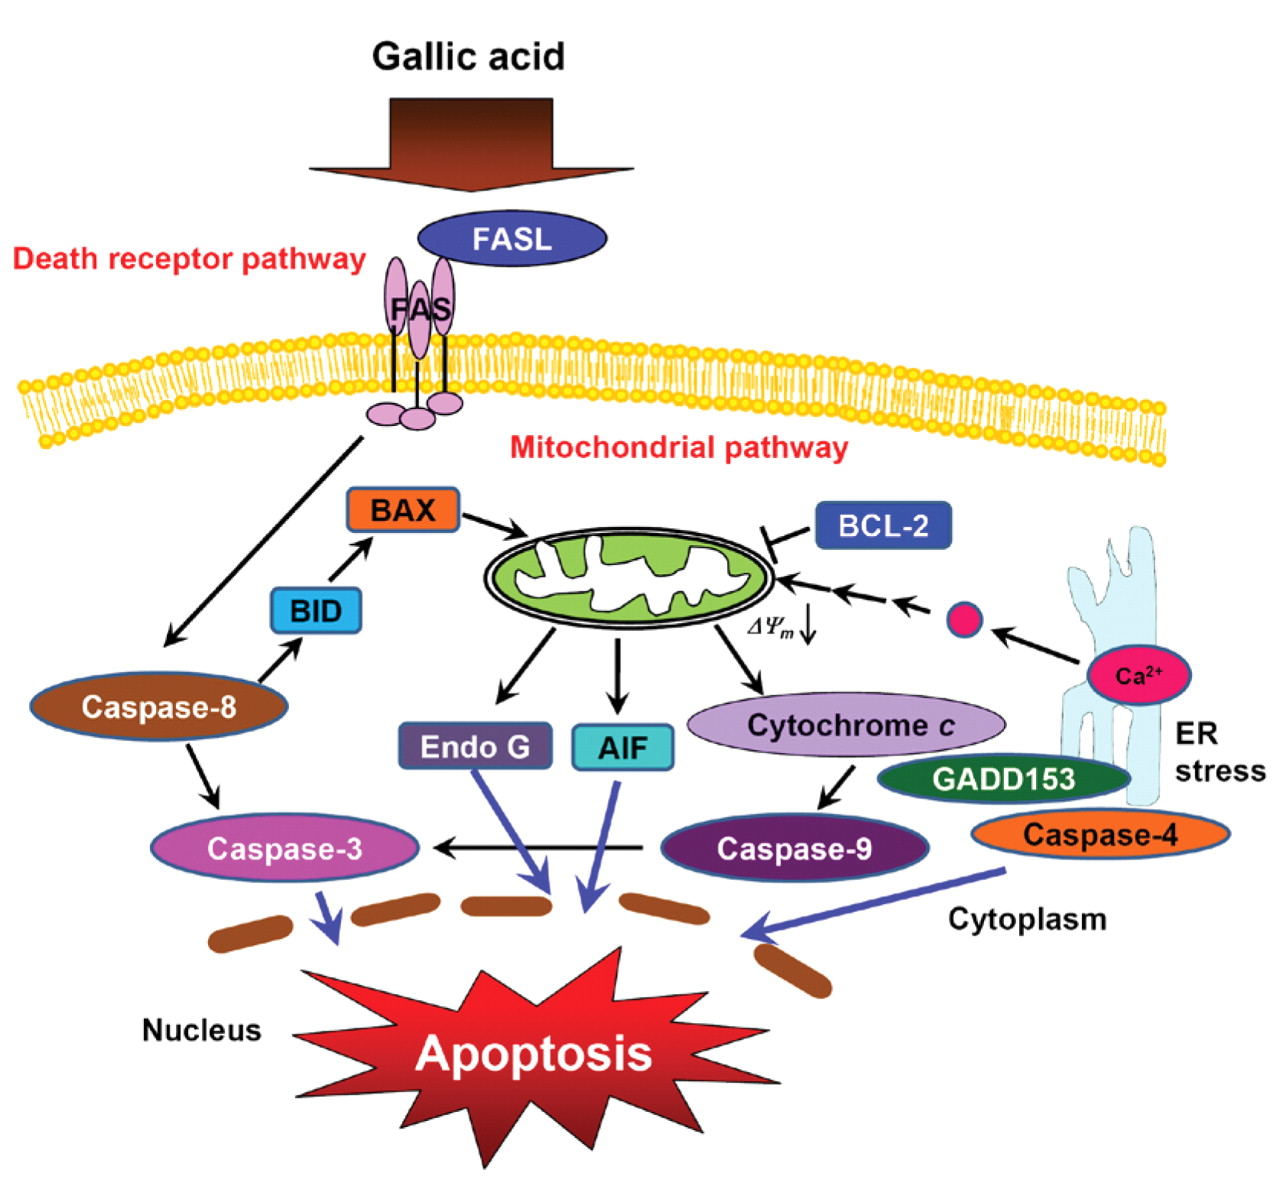 gallic acid induces g0 g1 phase arrest and apoptosis in human